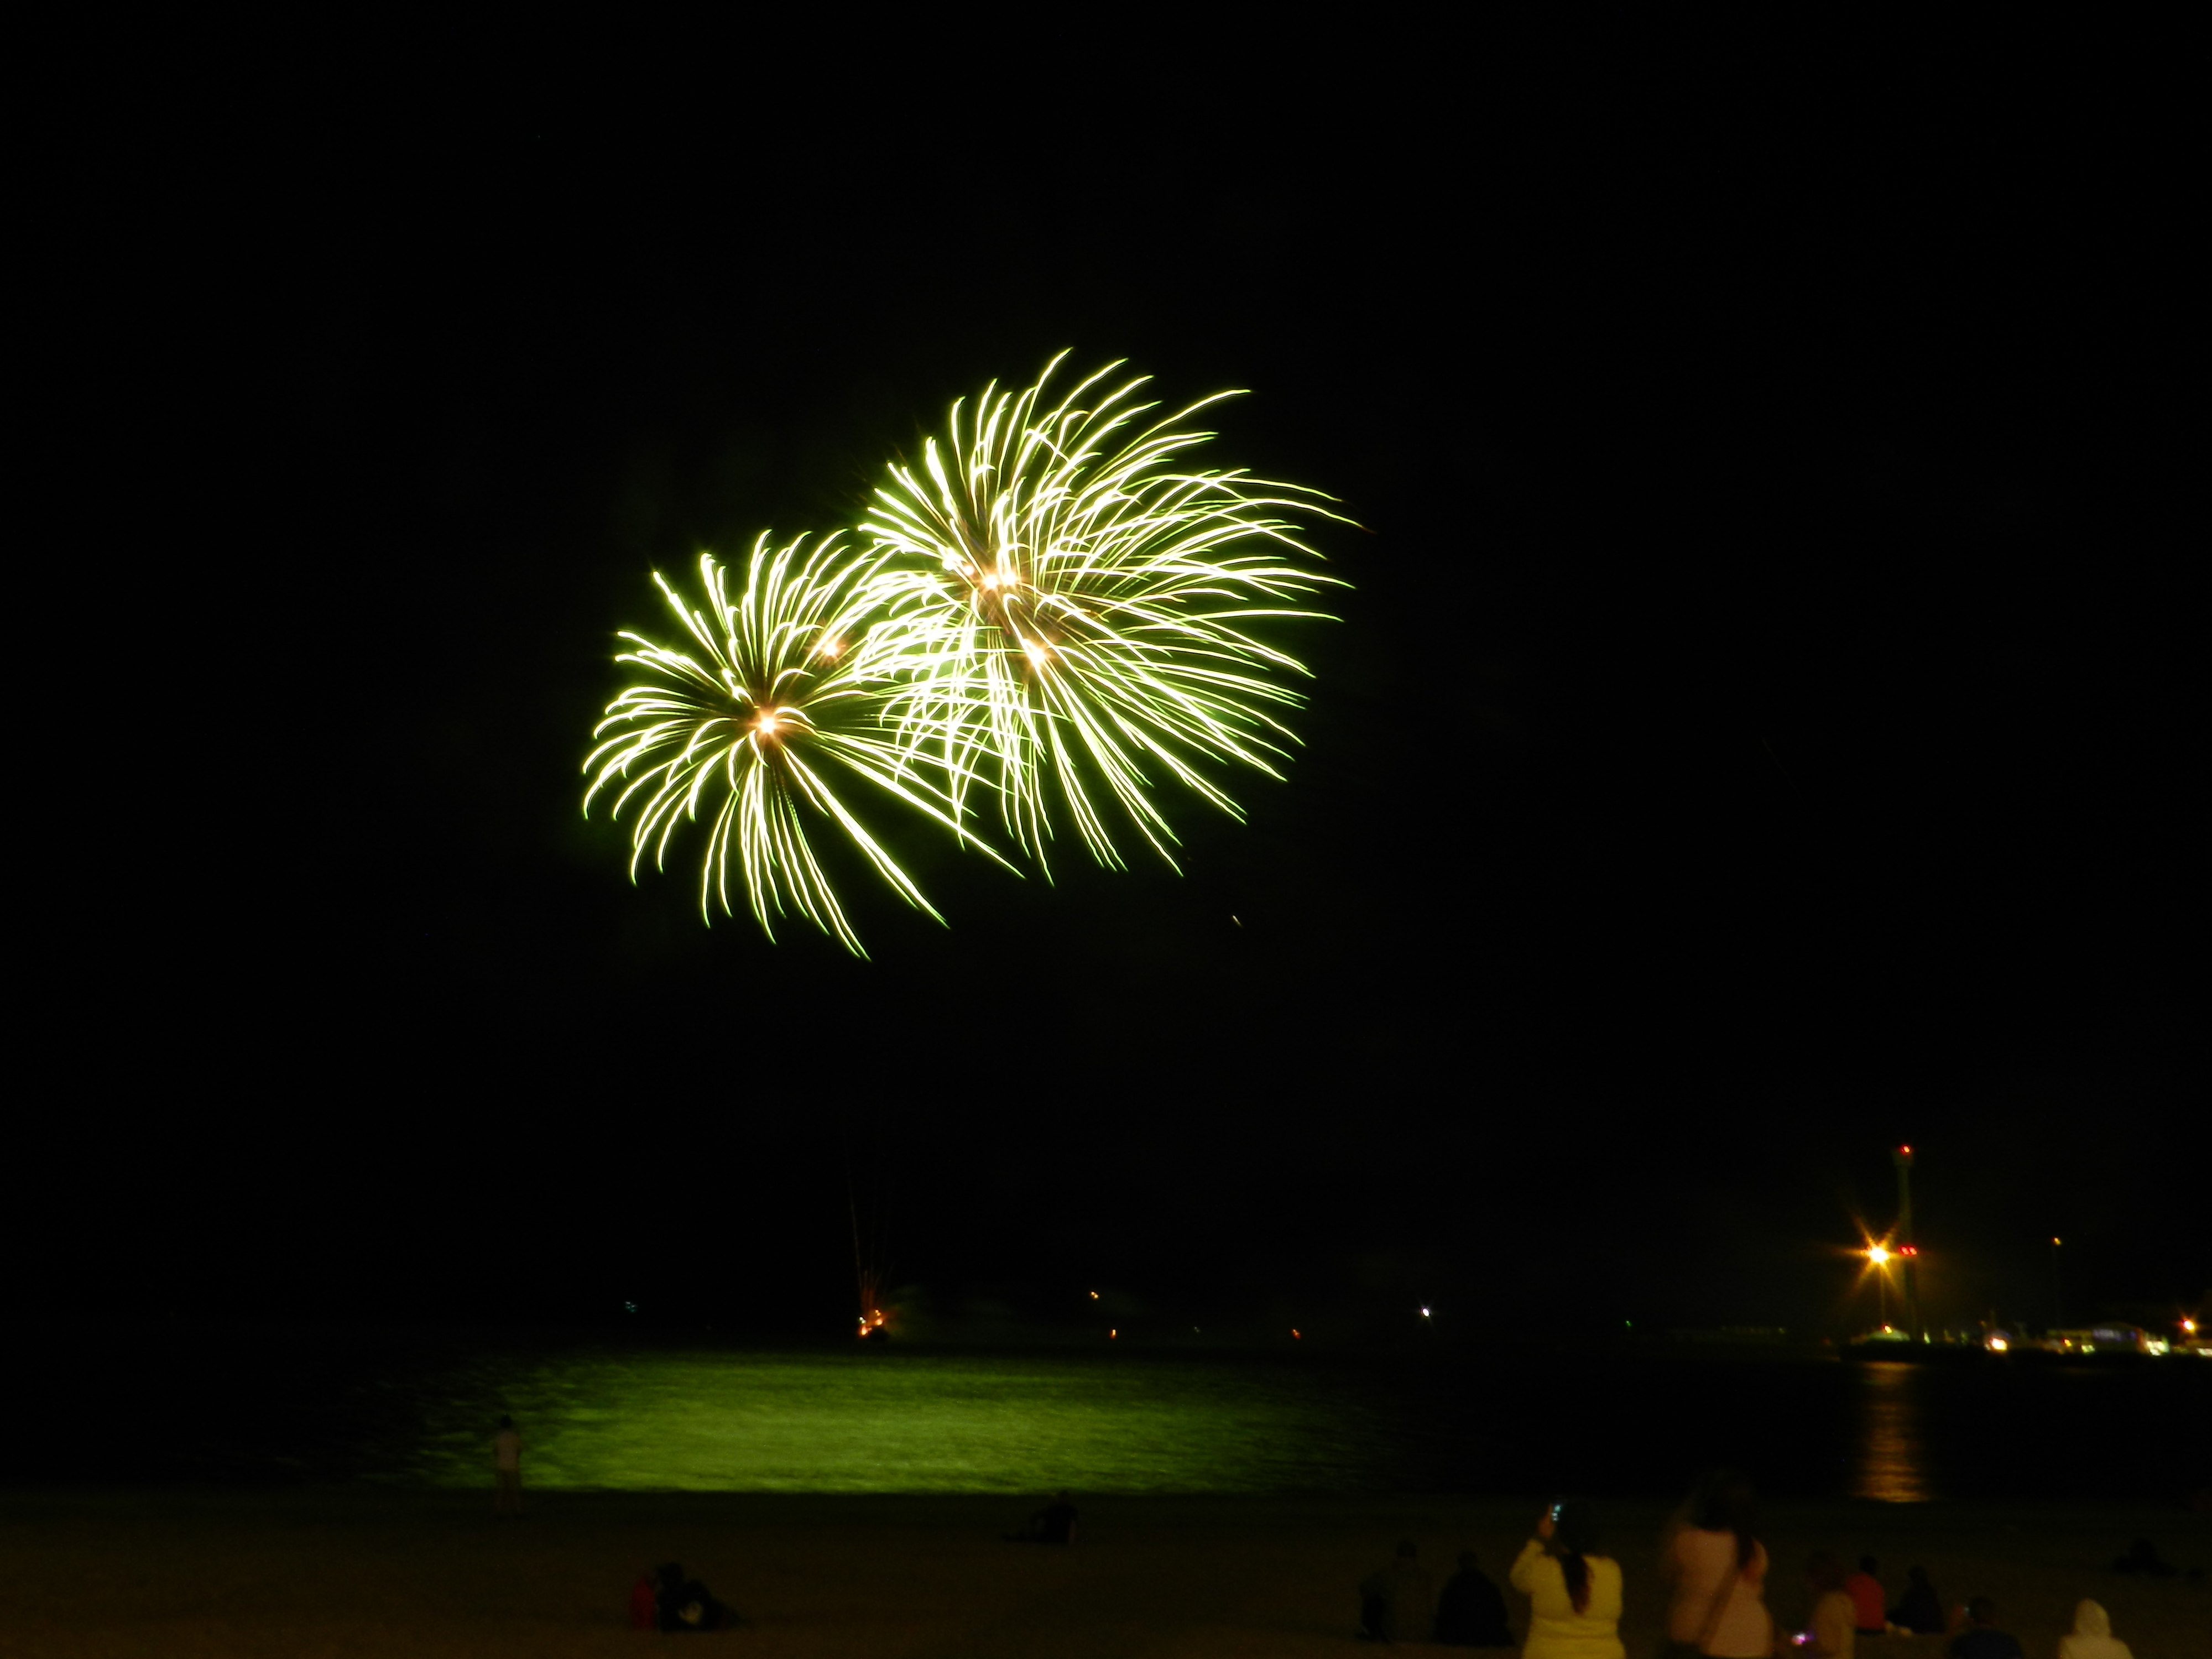 Weymouth opening ceremony for the London 2012 Olympic Games – Fireworks